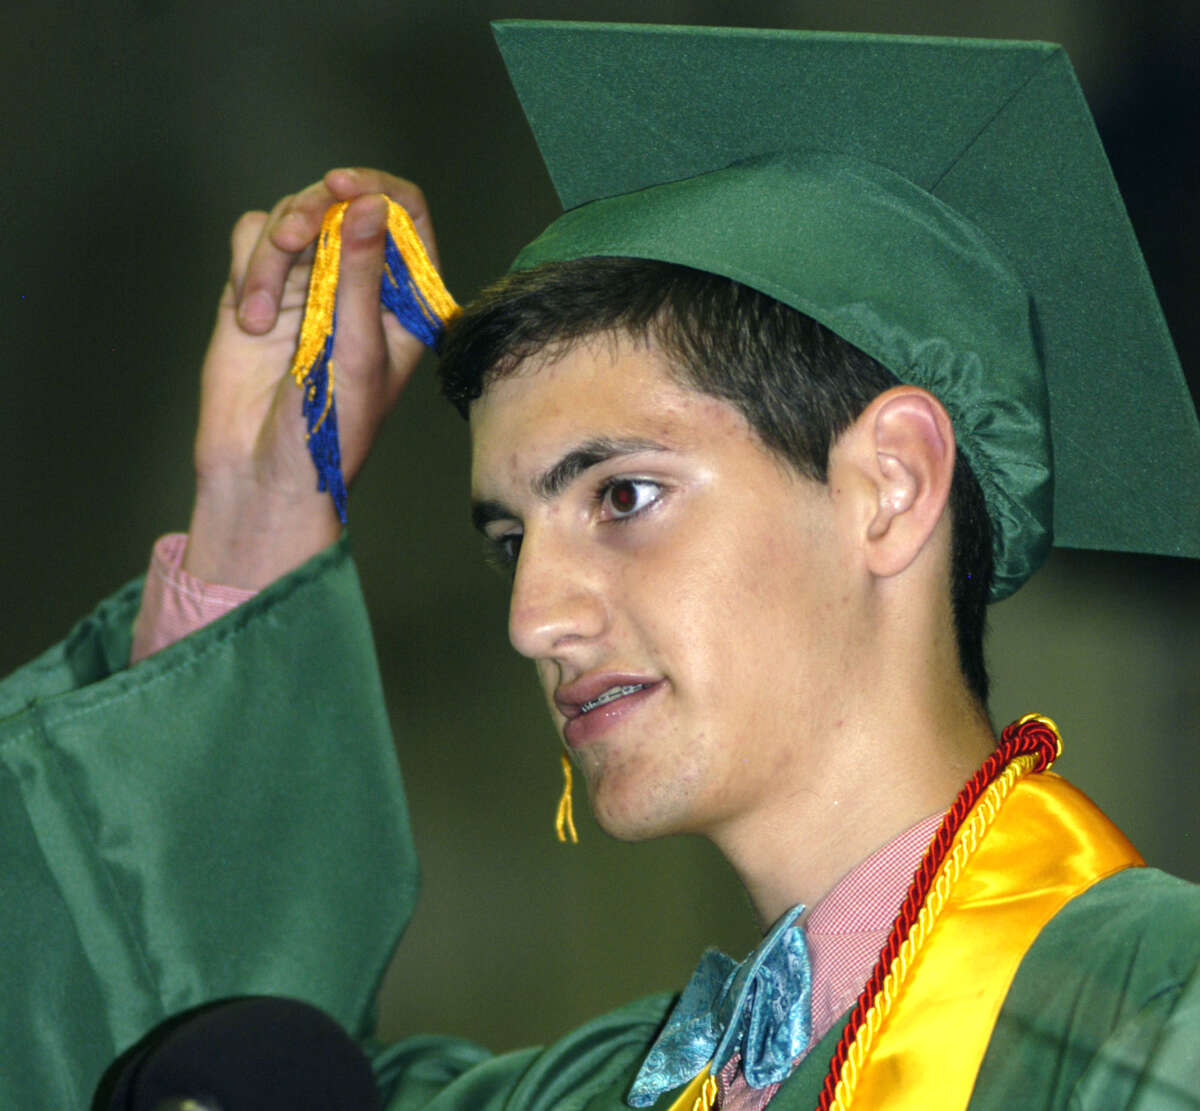 Class of 2013 president Ben Lawson leads his fellow graduates inthe traditional turning of the tassel to climax Saturday's New Milford High School graduation ceremony at the O'Neill Center on the campus of Western Connecticut State University in Danbury. June 22, 2013